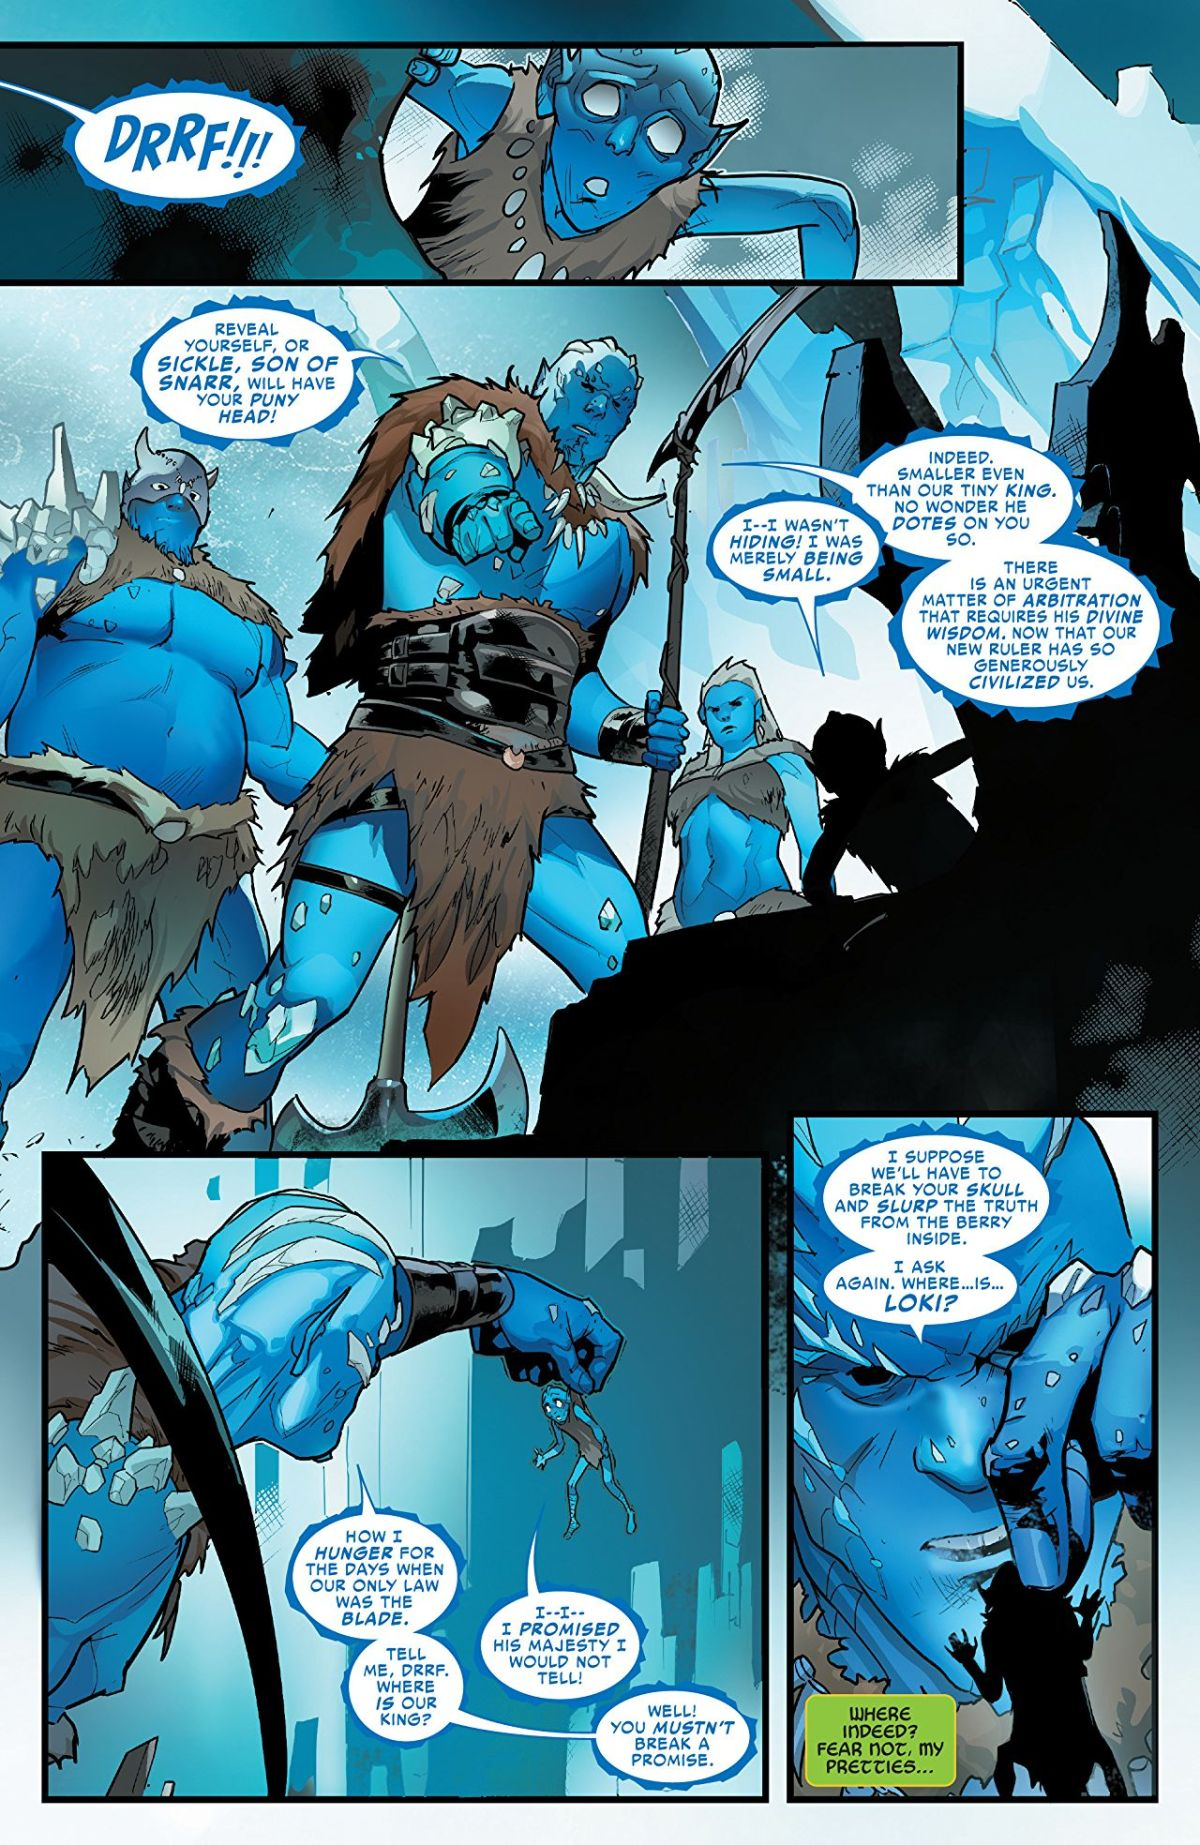 Loki #1: Page 5, Frost Giants Trying To Find Loki.